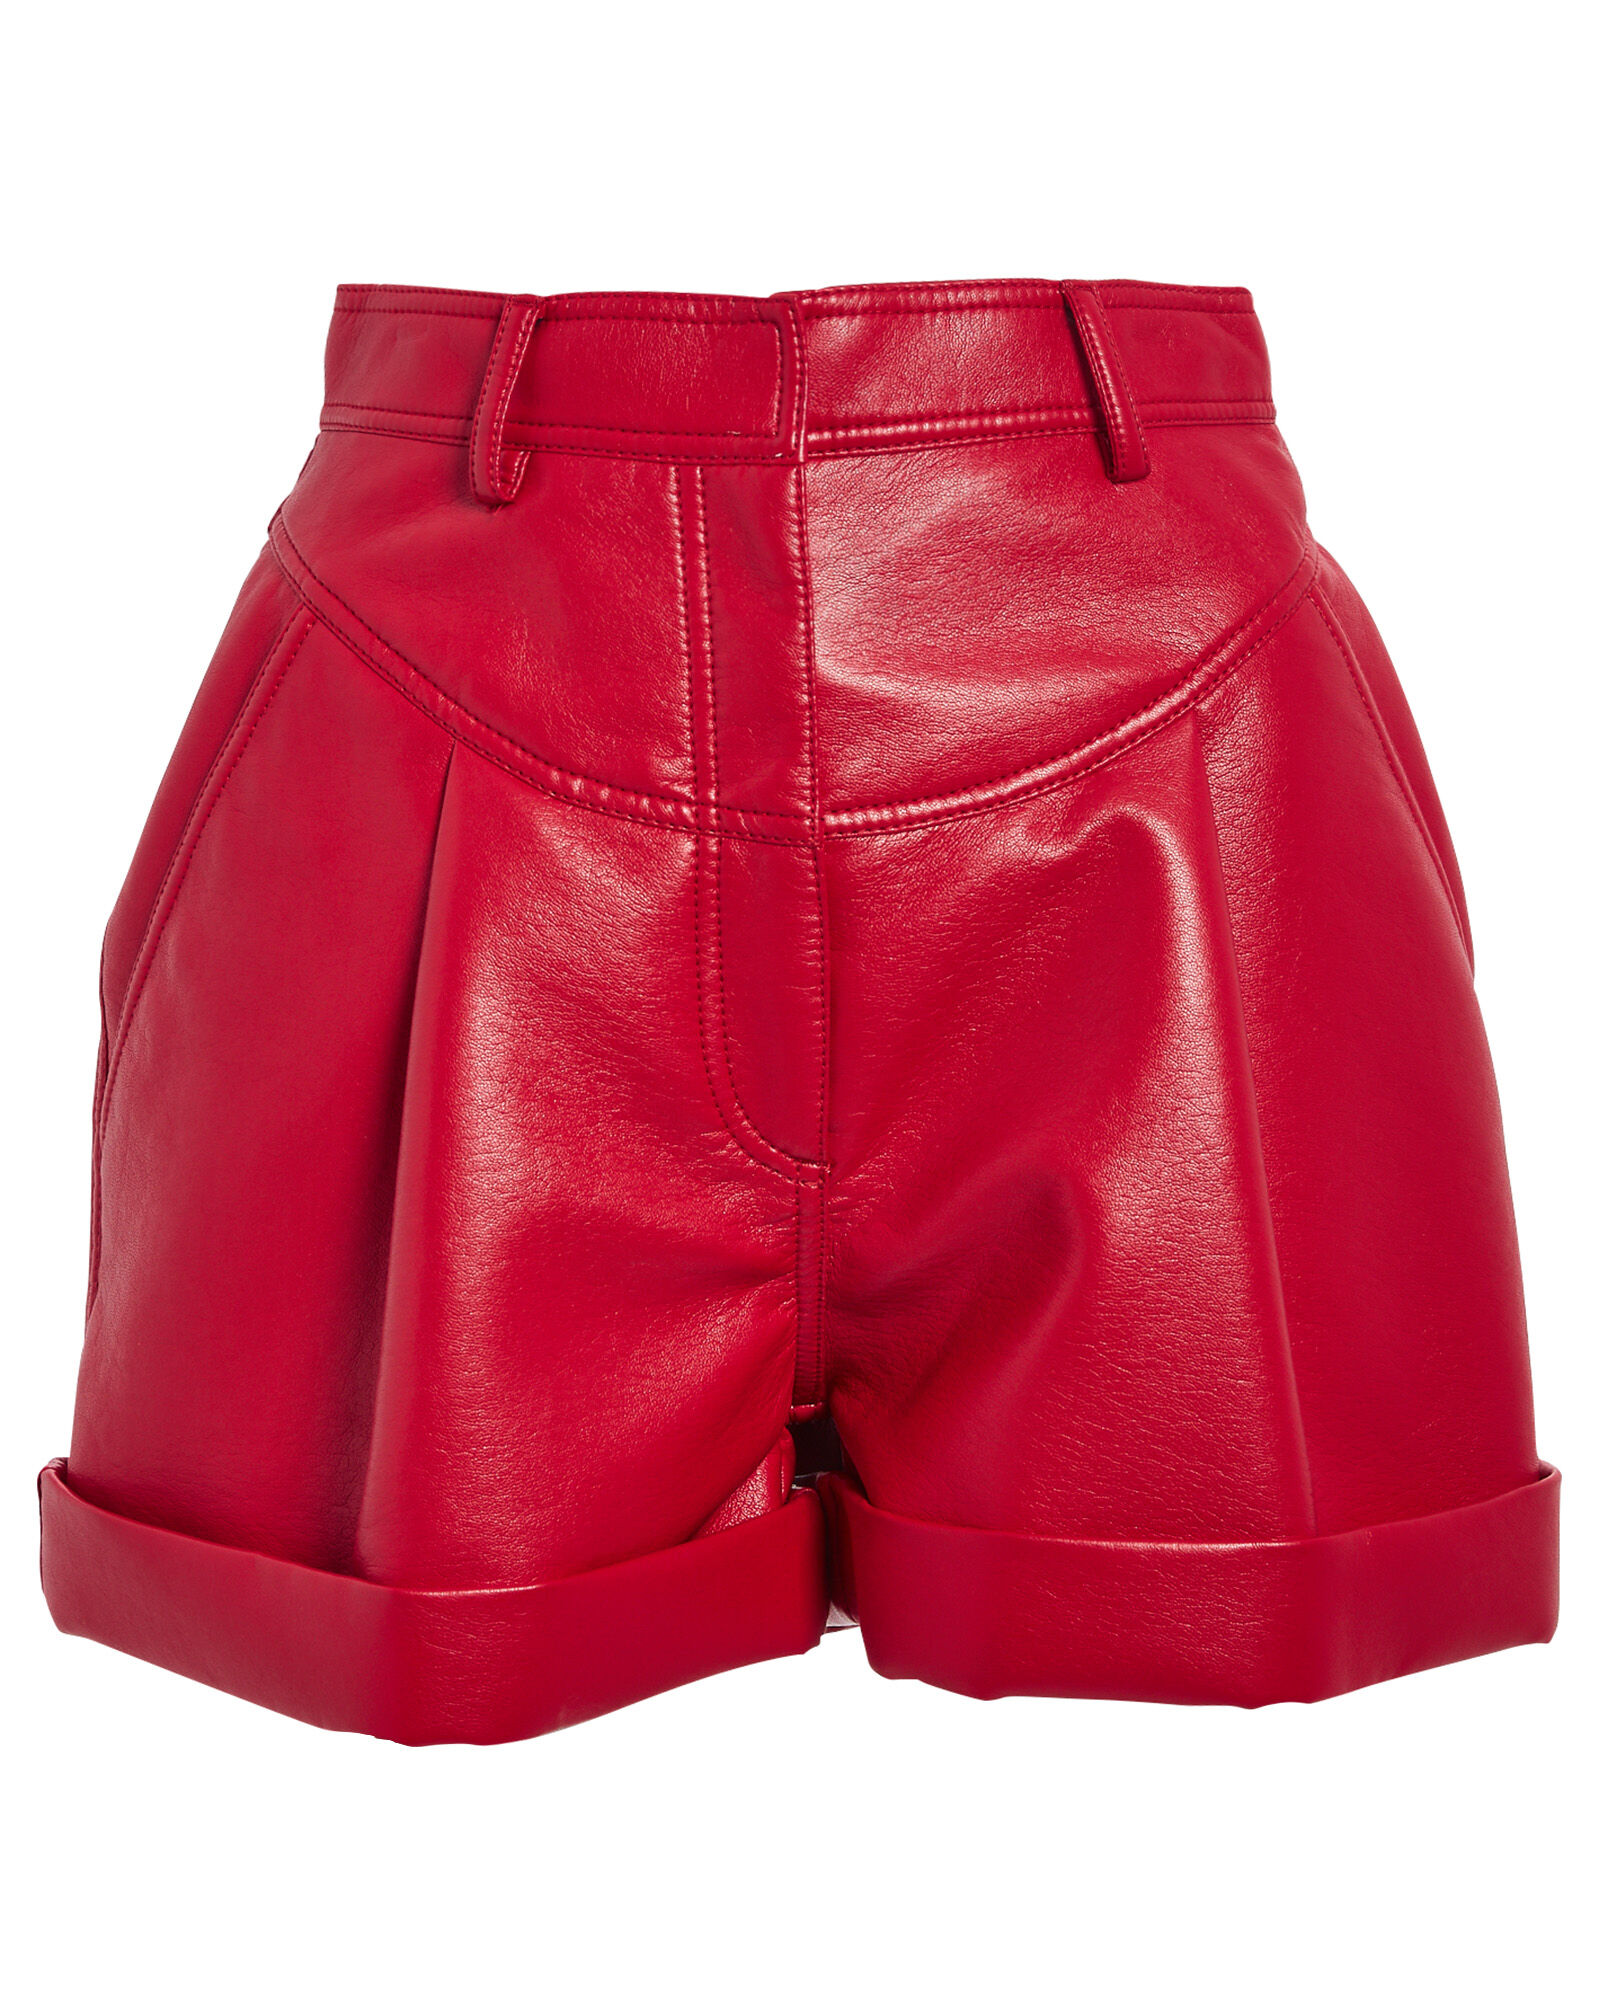 High-Waist Faux Leather Shorts, RED, hi-res